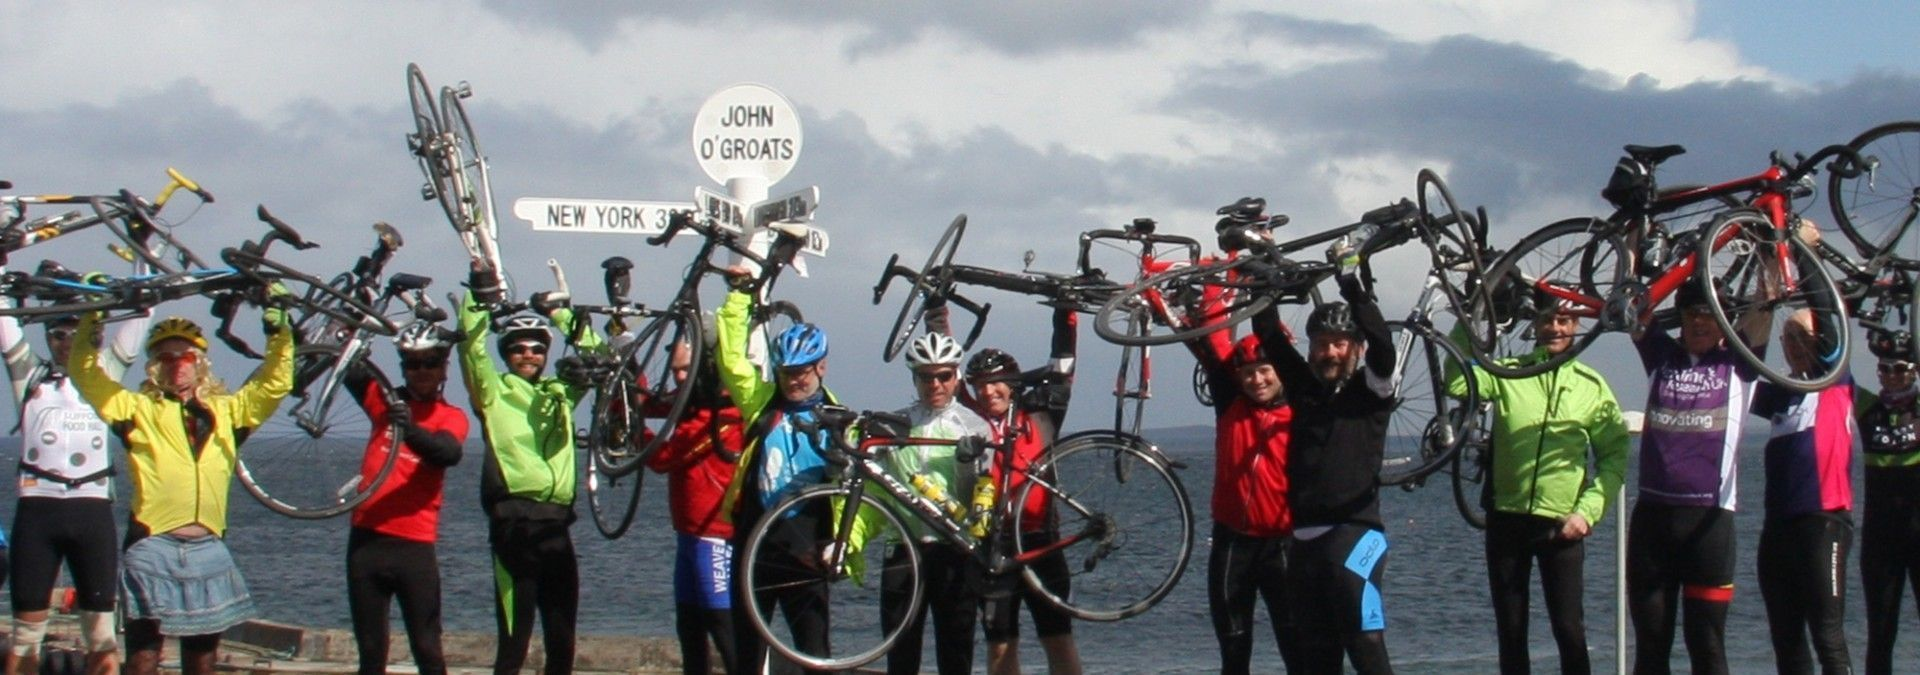 Charity_cyclists_celebrating_at_John_O_Groats.jpg